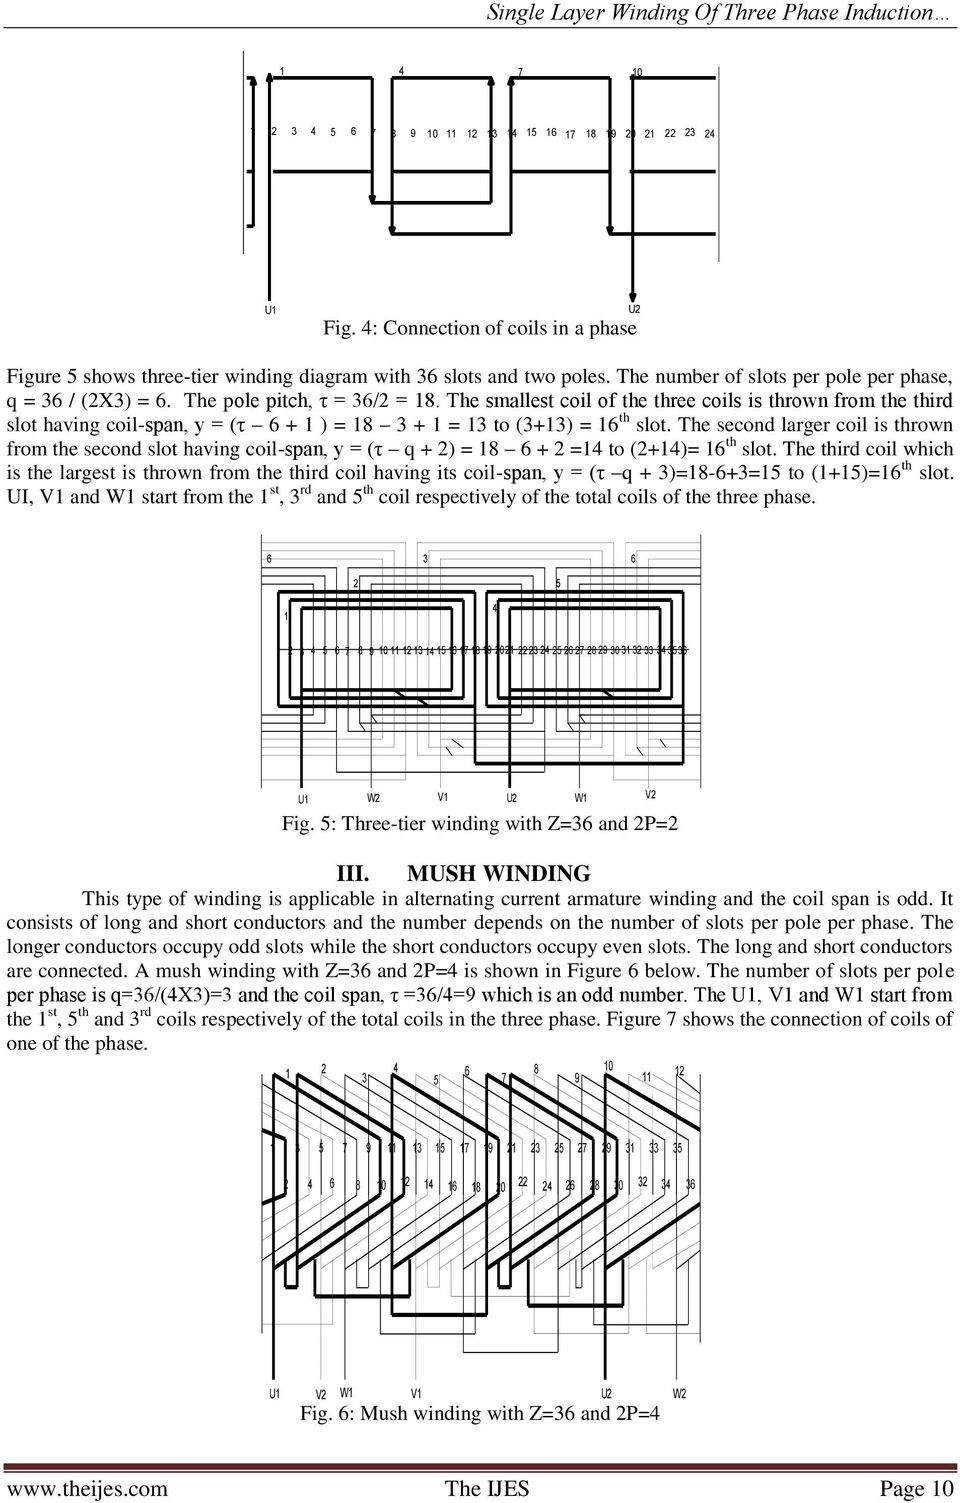 Single layer winding of three phase induction motor pdf the second larger coil is thrown from the second slot having coil span y ccuart Choice Image